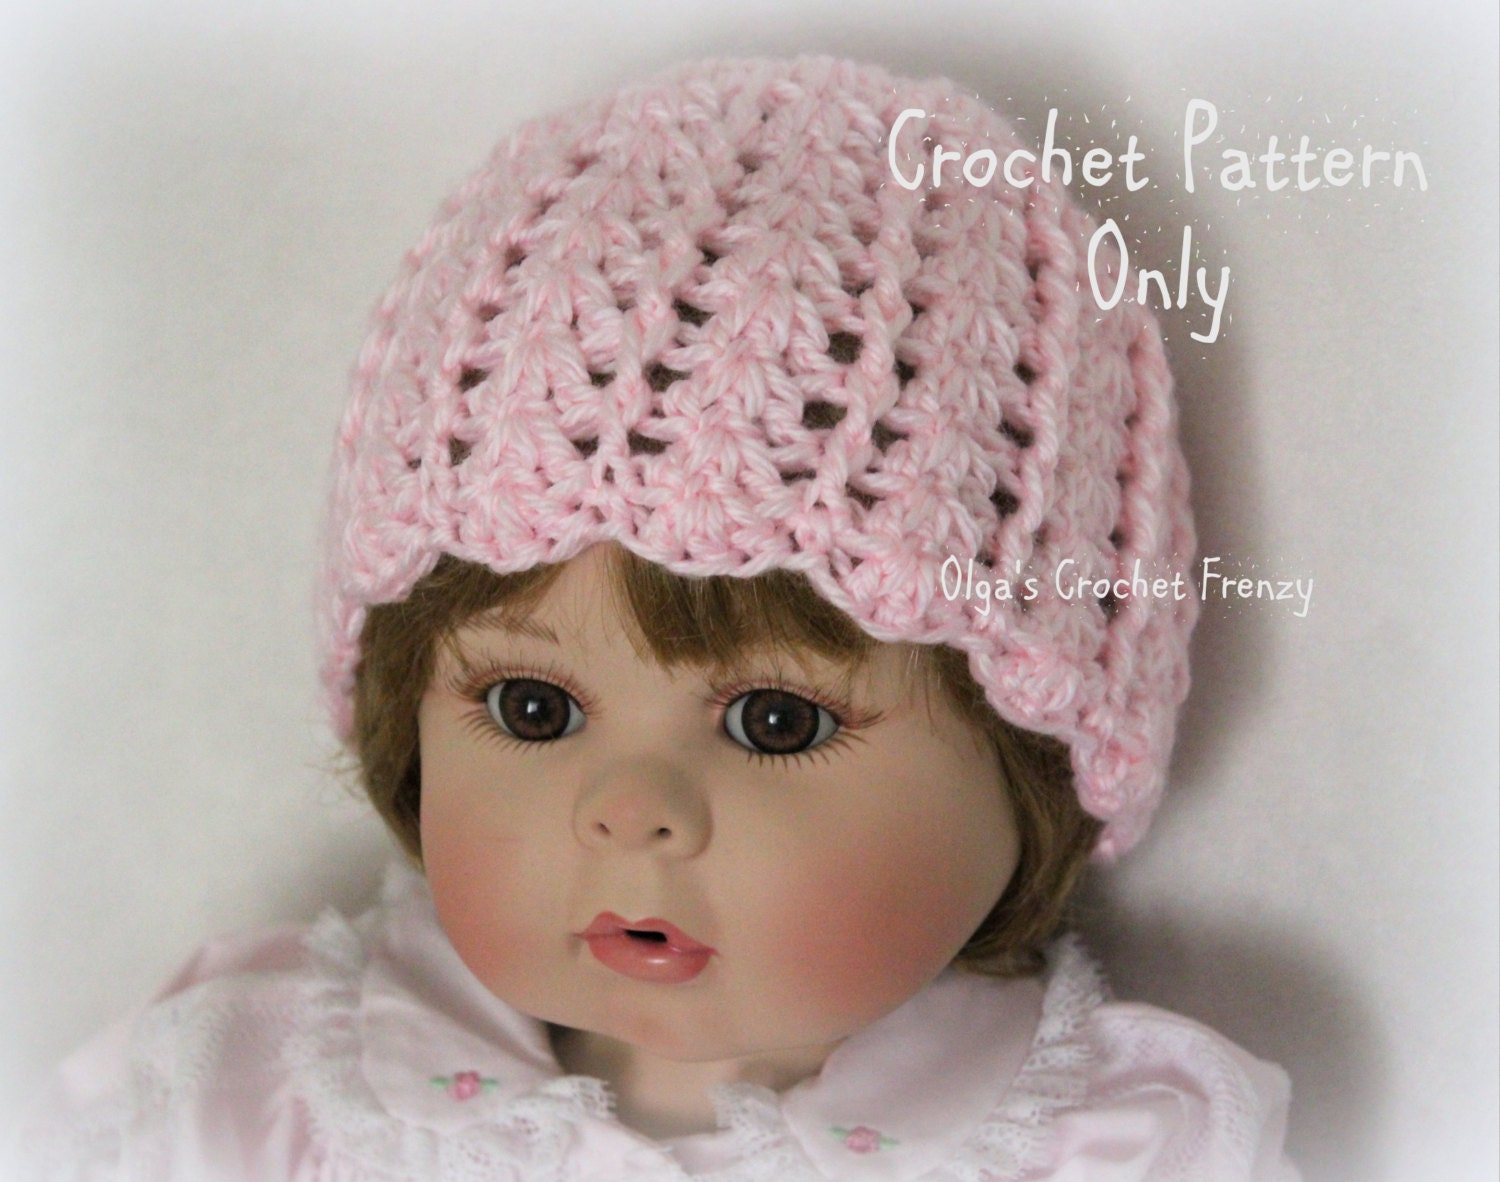 Crochet Baby Hat Pattern Beginner : Baby Girl Hat Crochet Pattern Beginner Skill Level Size 0-3